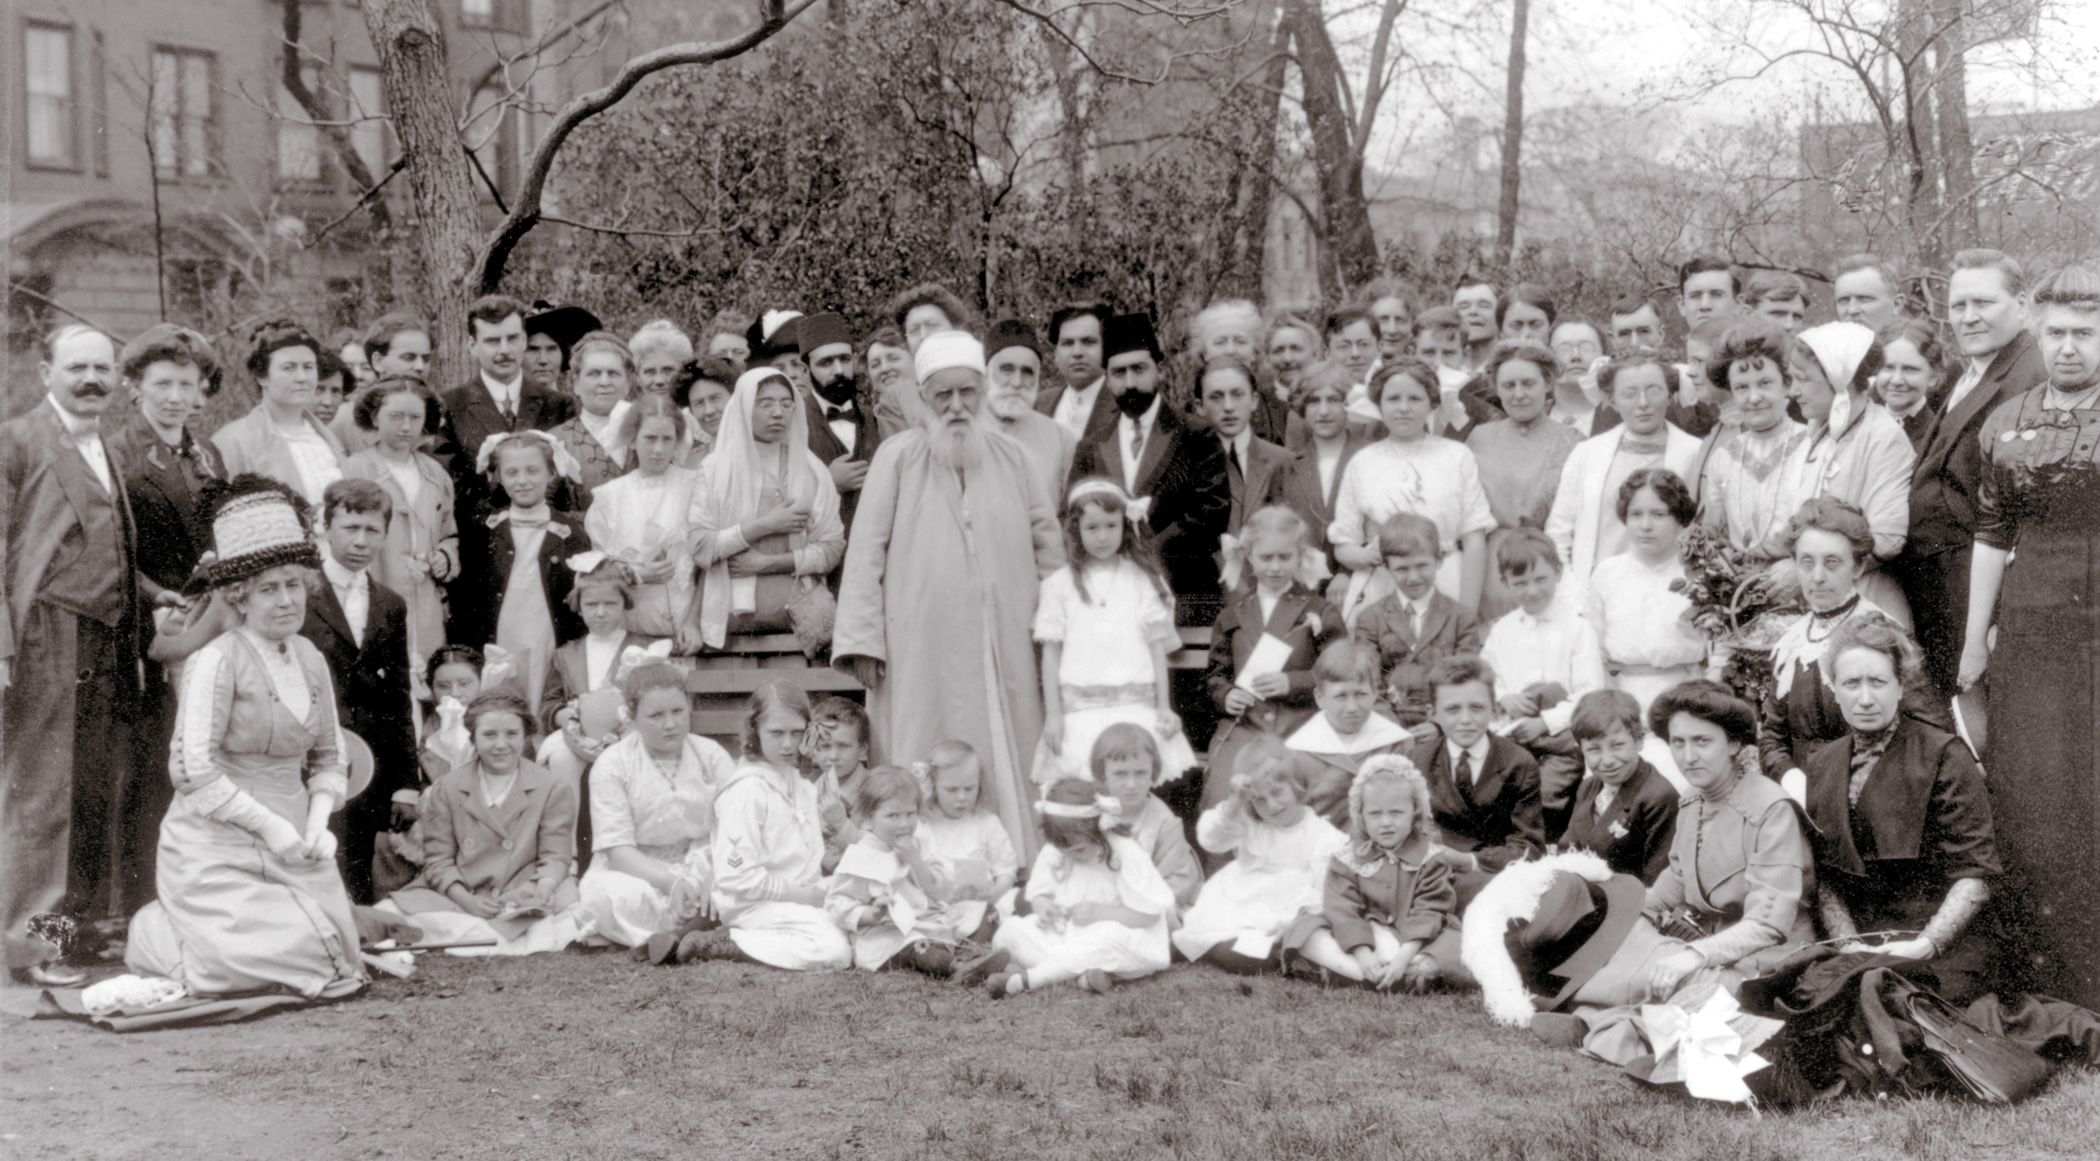 Abdul-Bahá is shown (at center) with Bahaís at Lincoln Park, Chicago, Ill. in 1912.